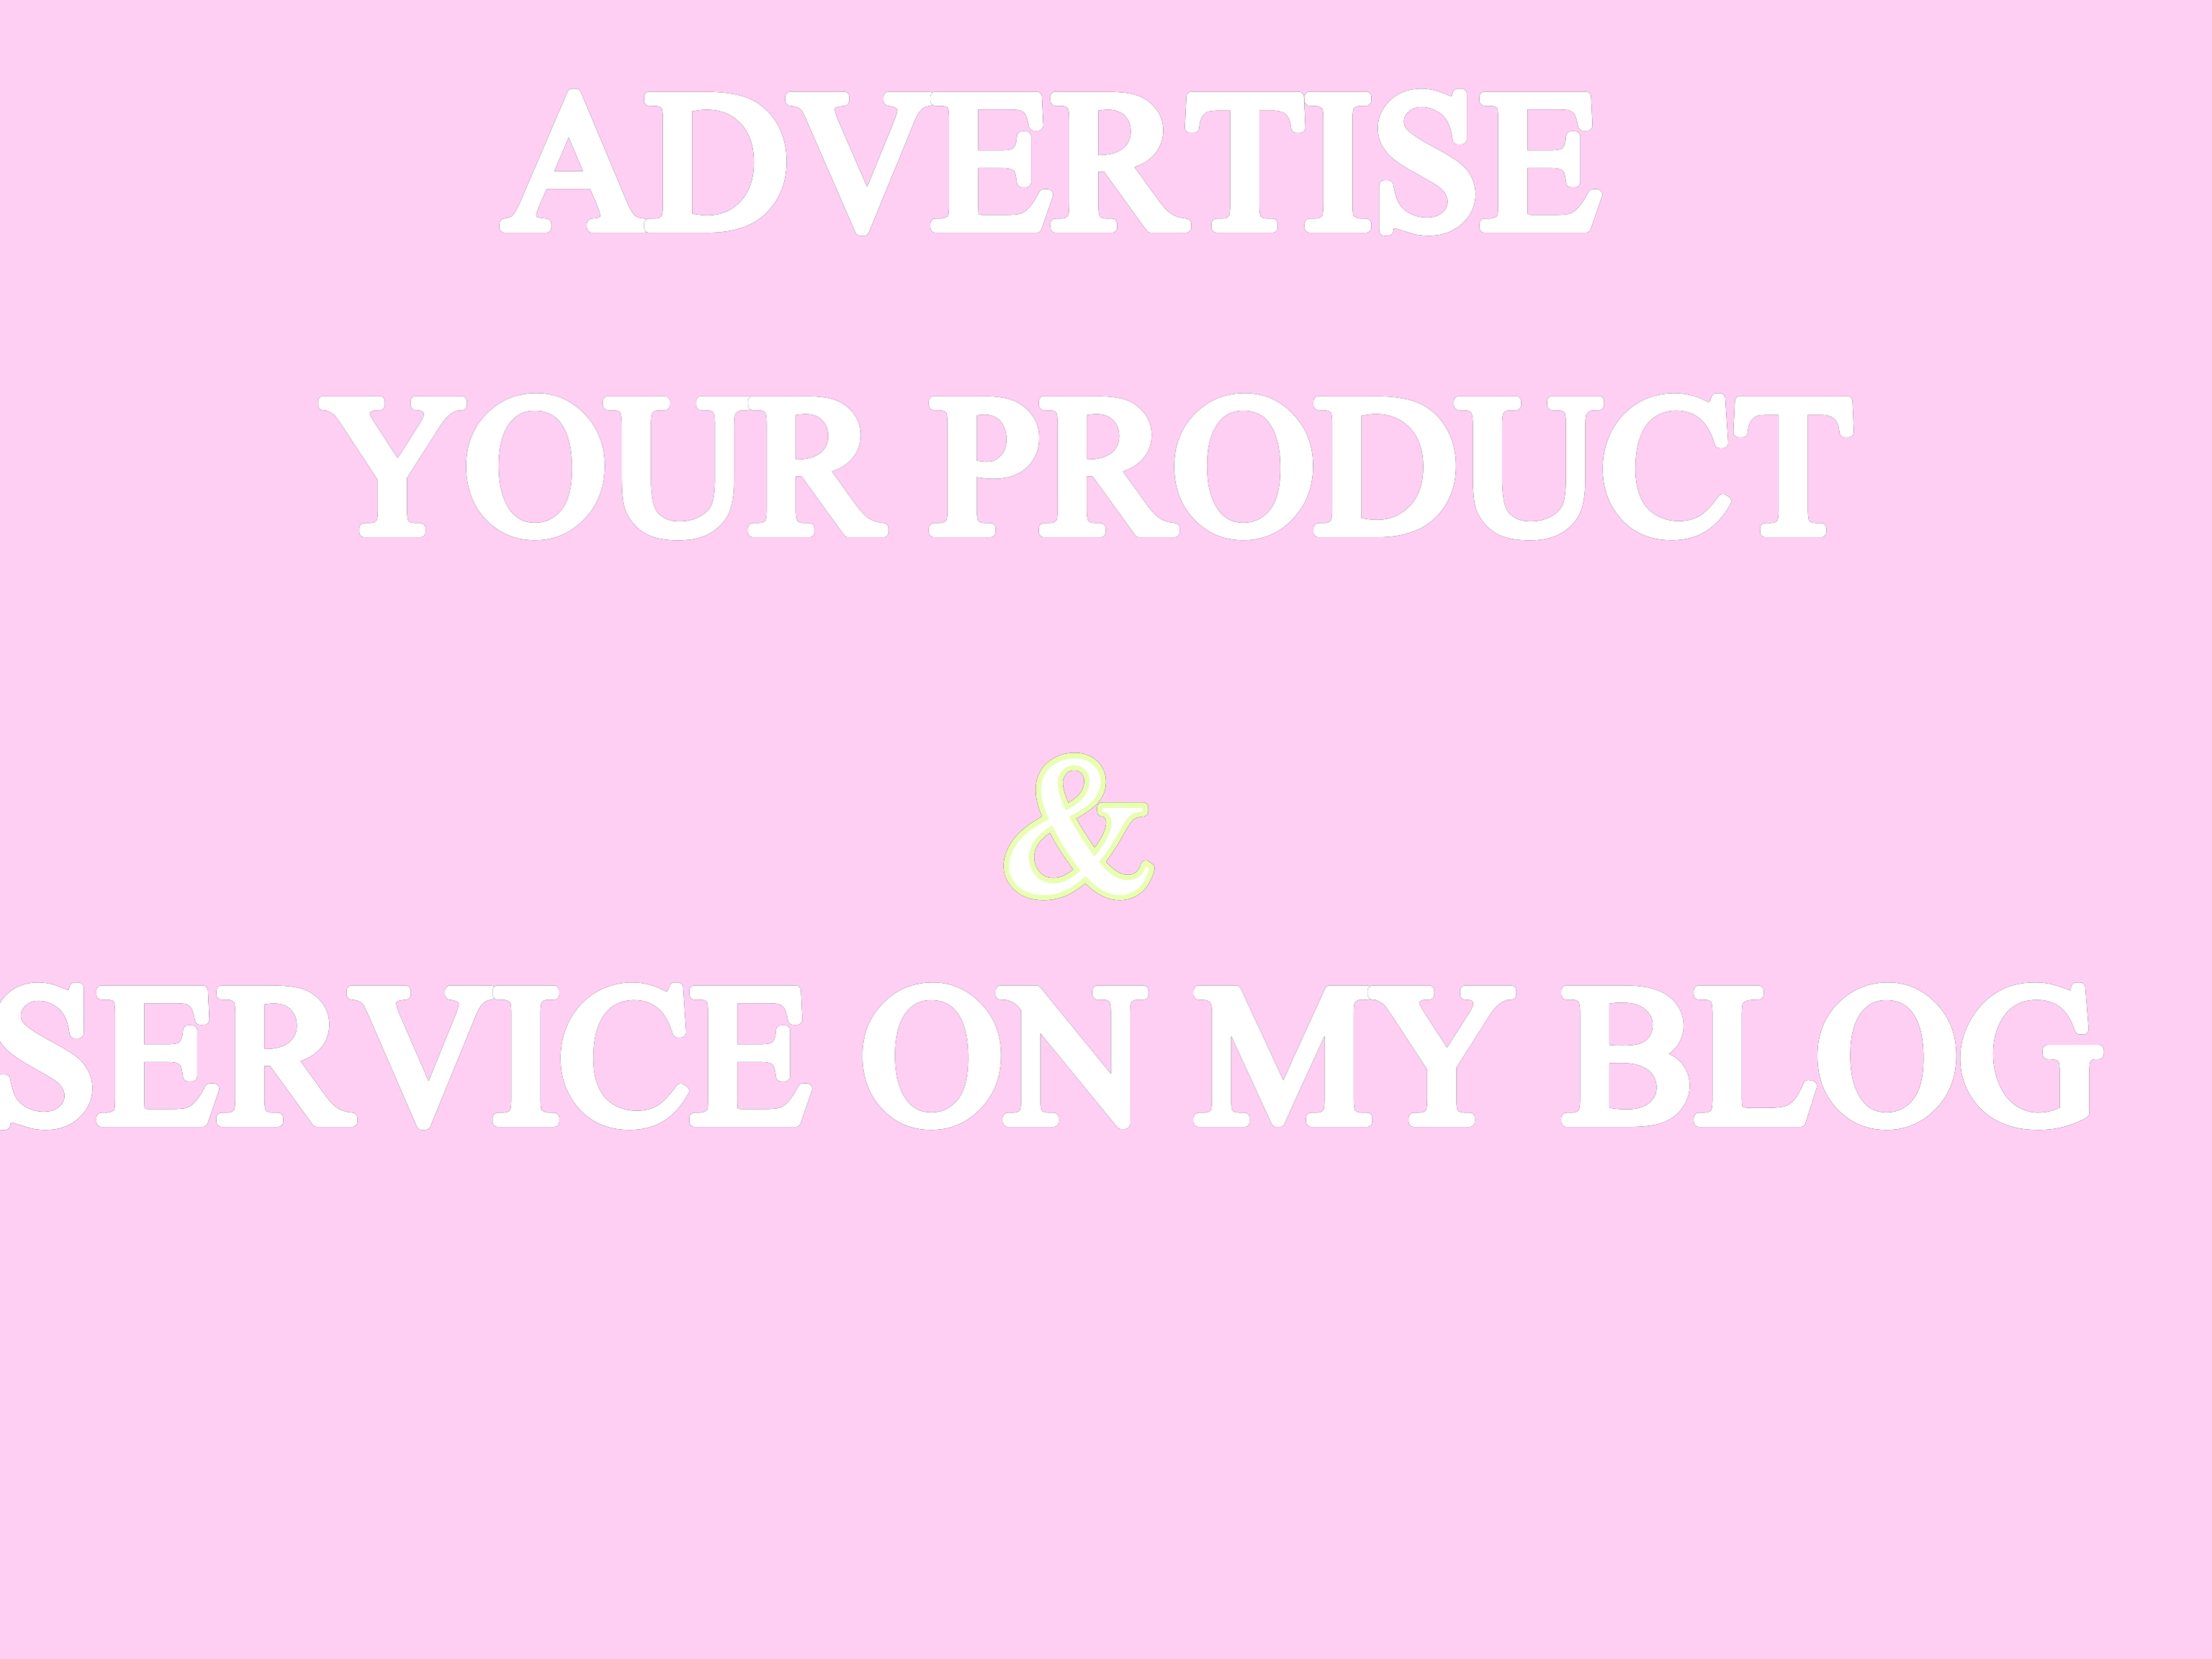 Advertise Your Product and Service On My Blog